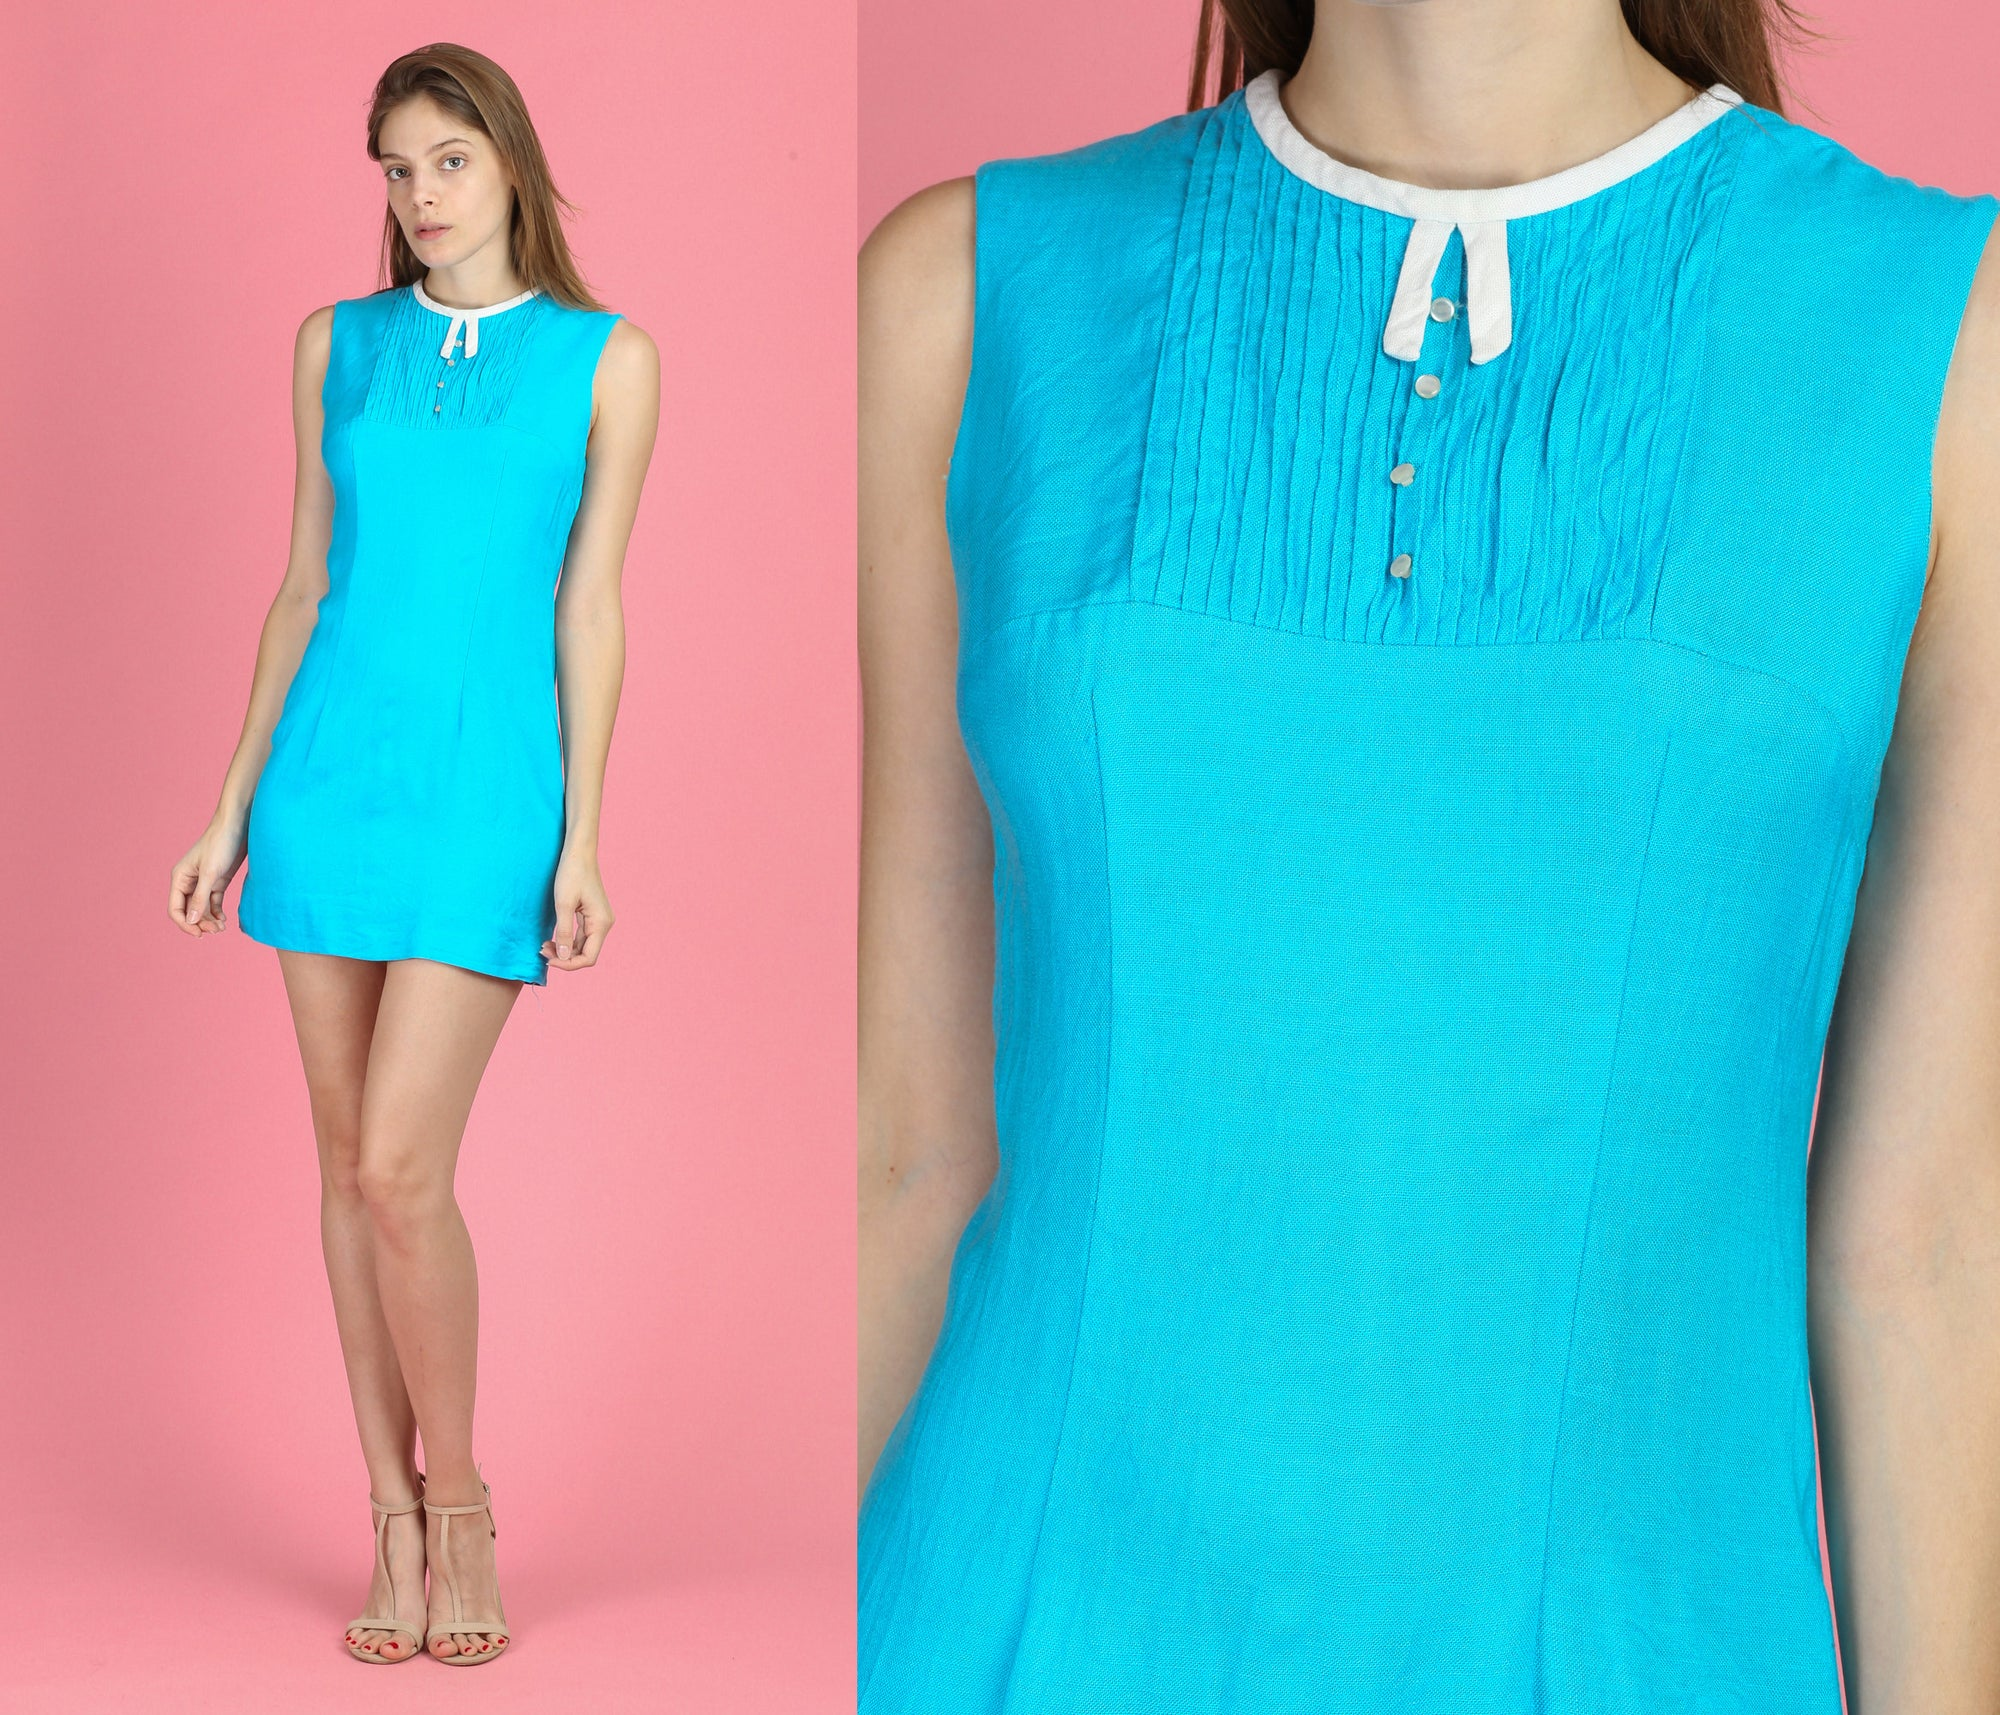 60s Blue Mod Twiggy Mini Dress - Small